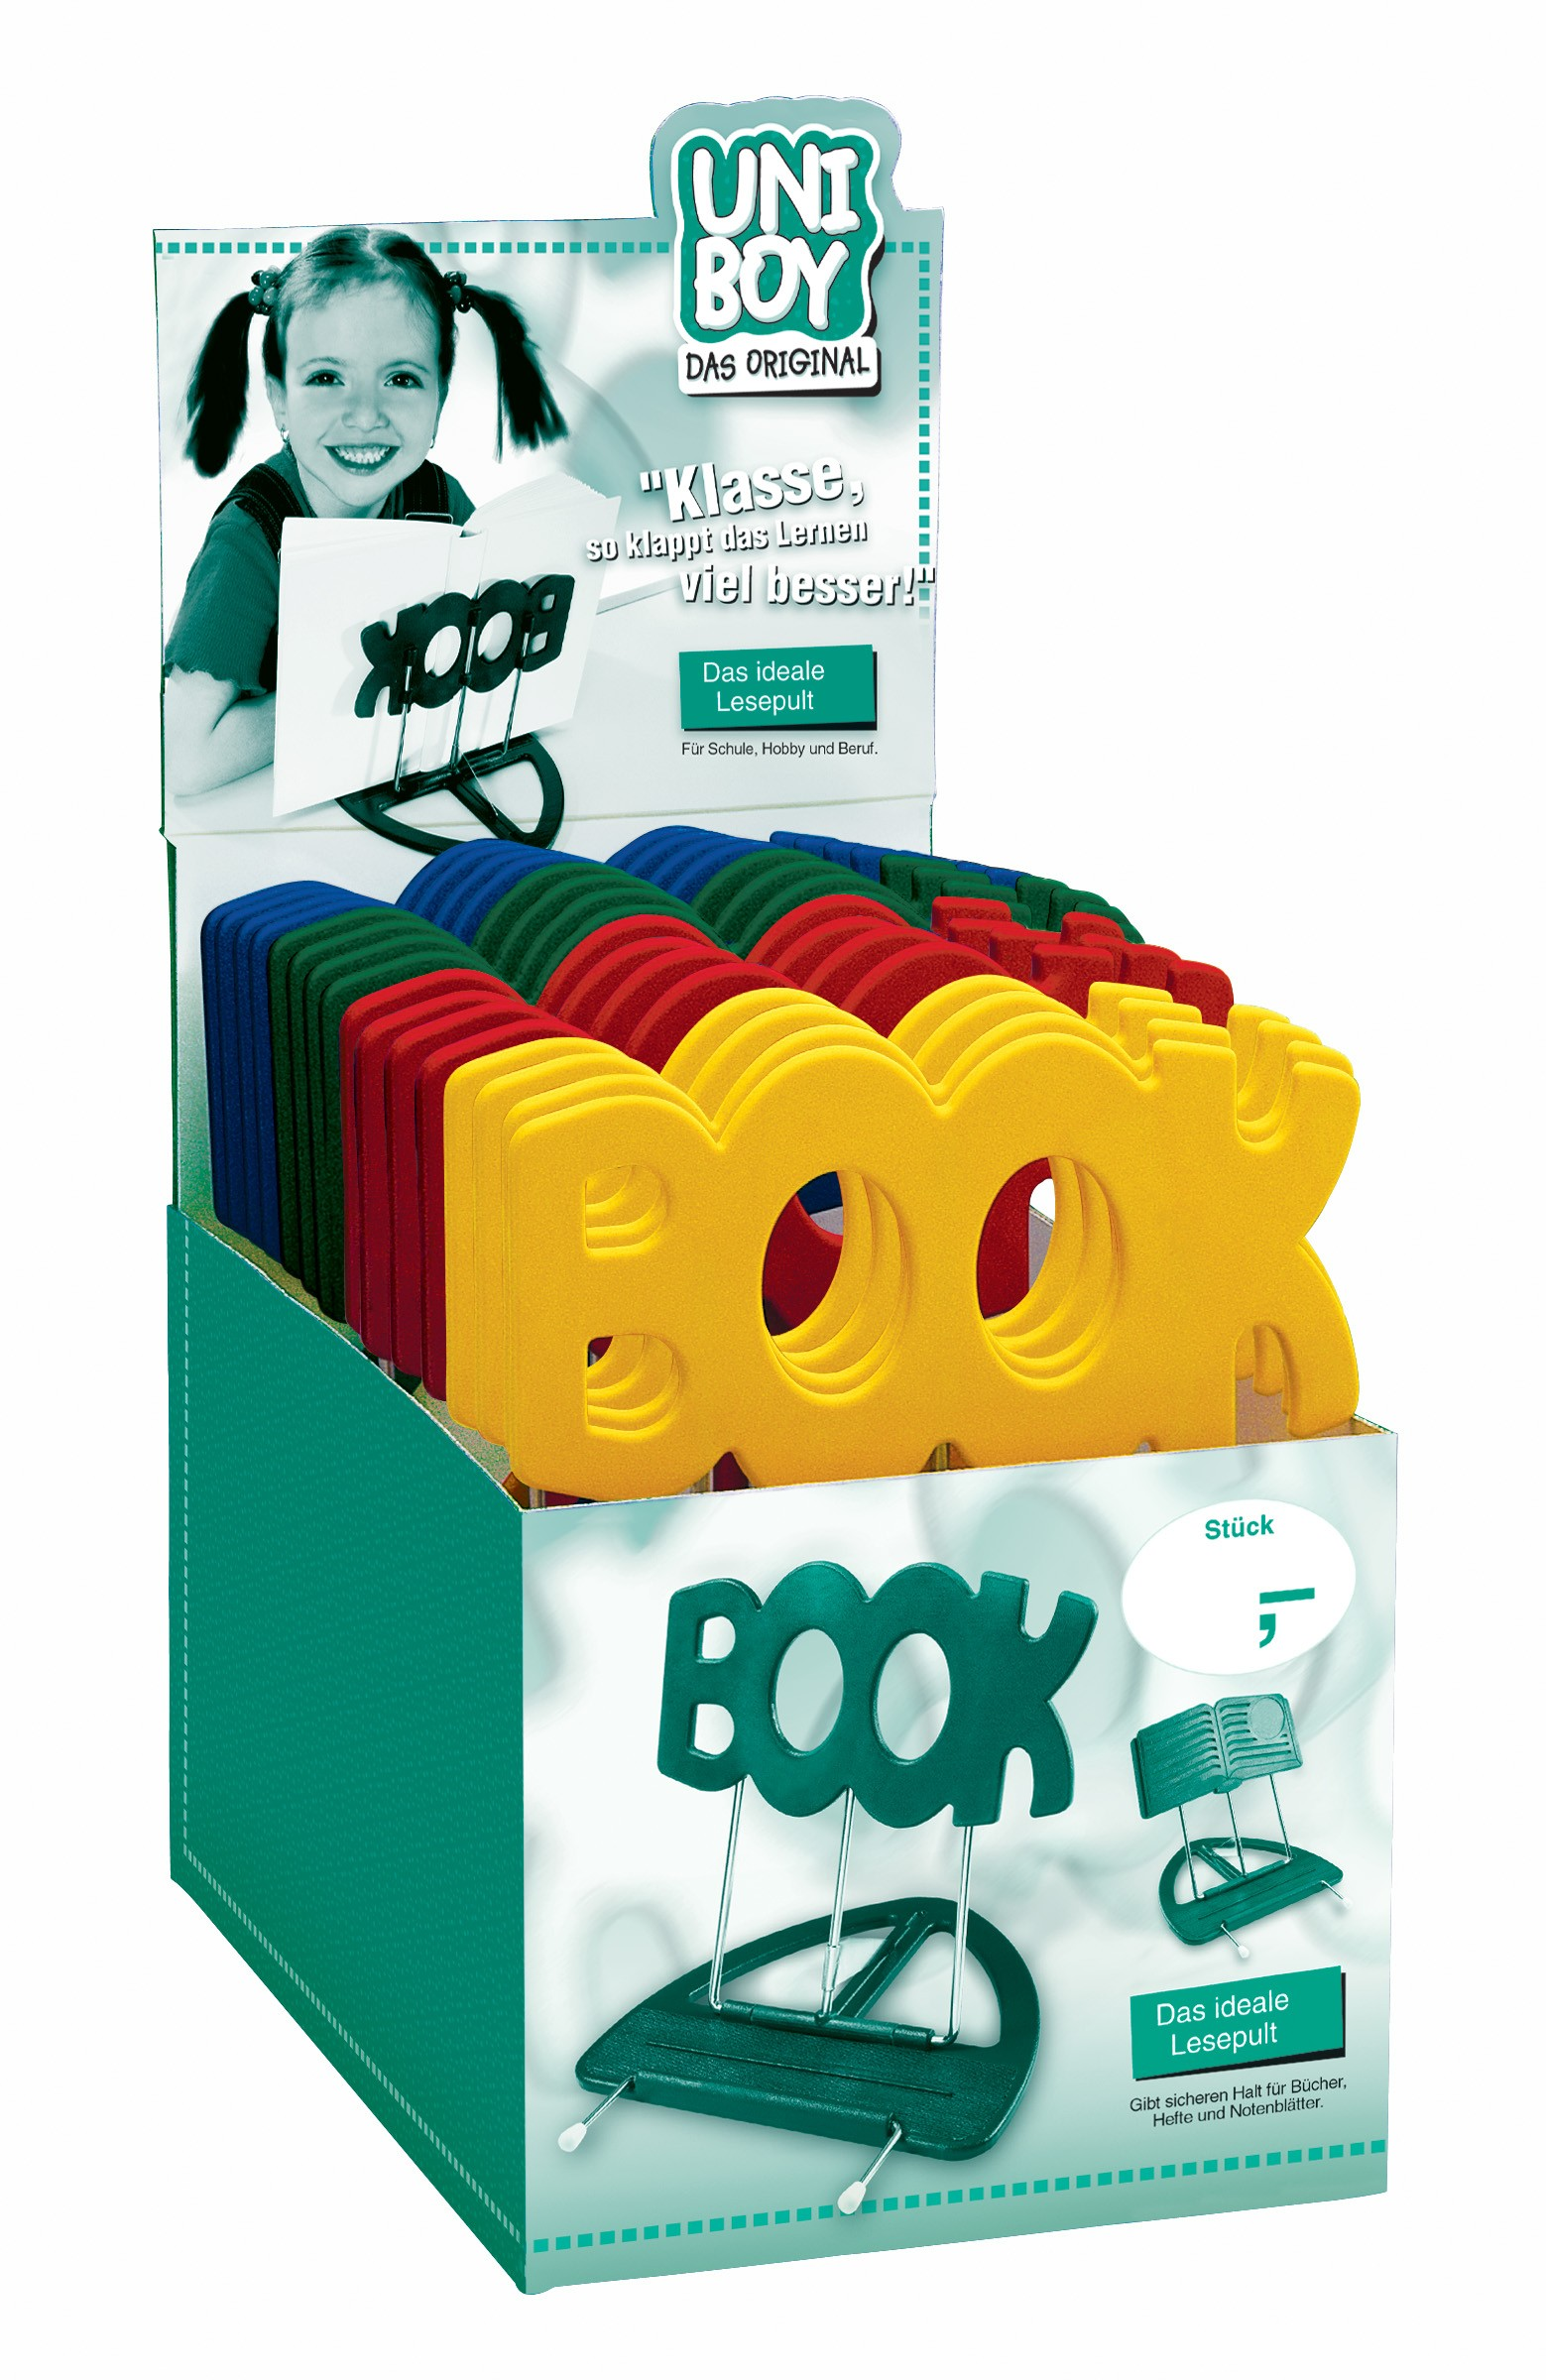 "Konig & Meyer 12440 Uni-Boy ""Book"" Stands - Mixed Display Pack of 22"